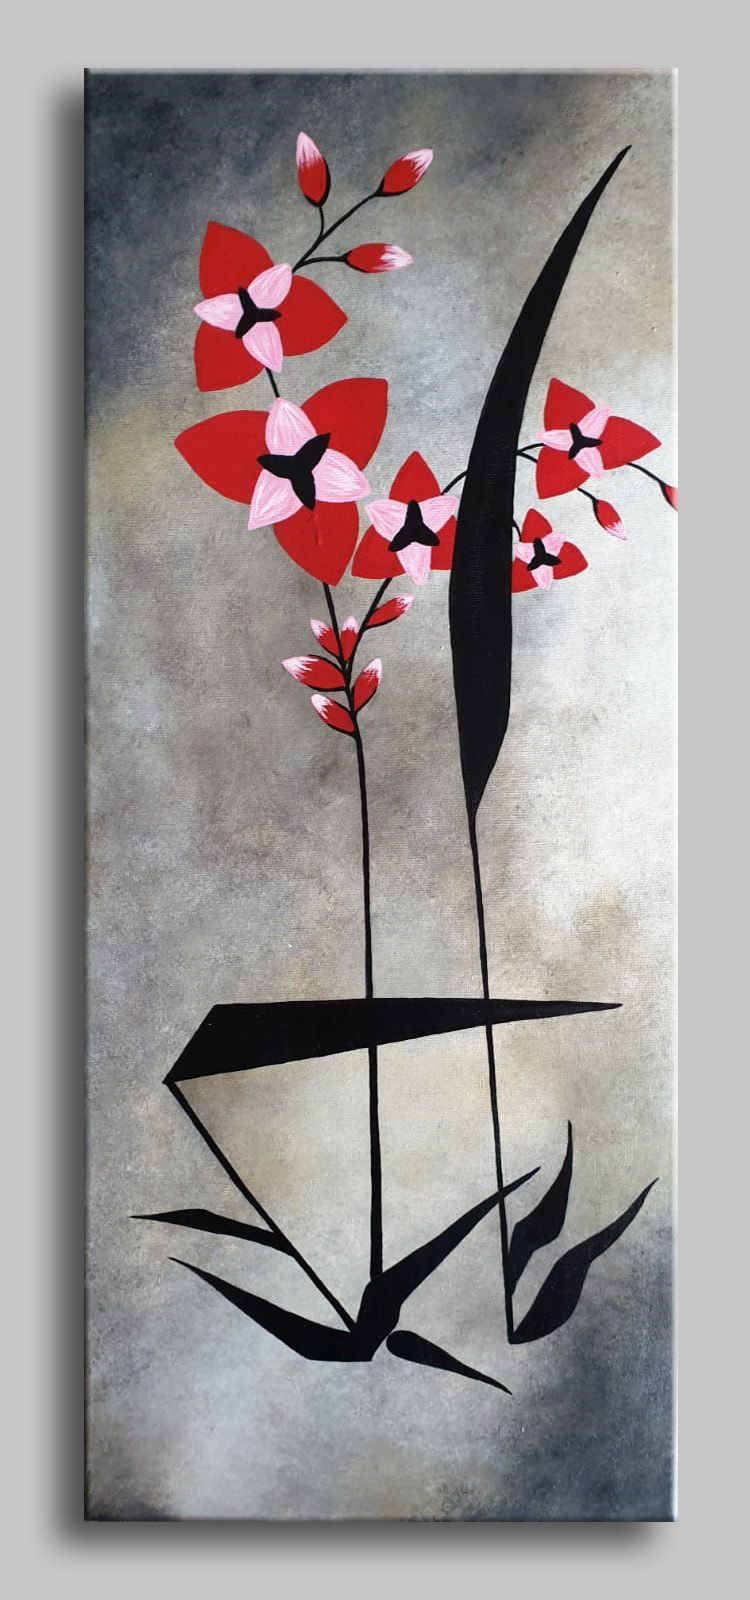 Abstract Asian Flowers Triptych Painting Original 3 Canvas Floral Acrylic On Canvas Home Wall Artwork Ready To Hang Made To Order Asian In 2020 Flower Painting Asian Flowers Wall Artwork